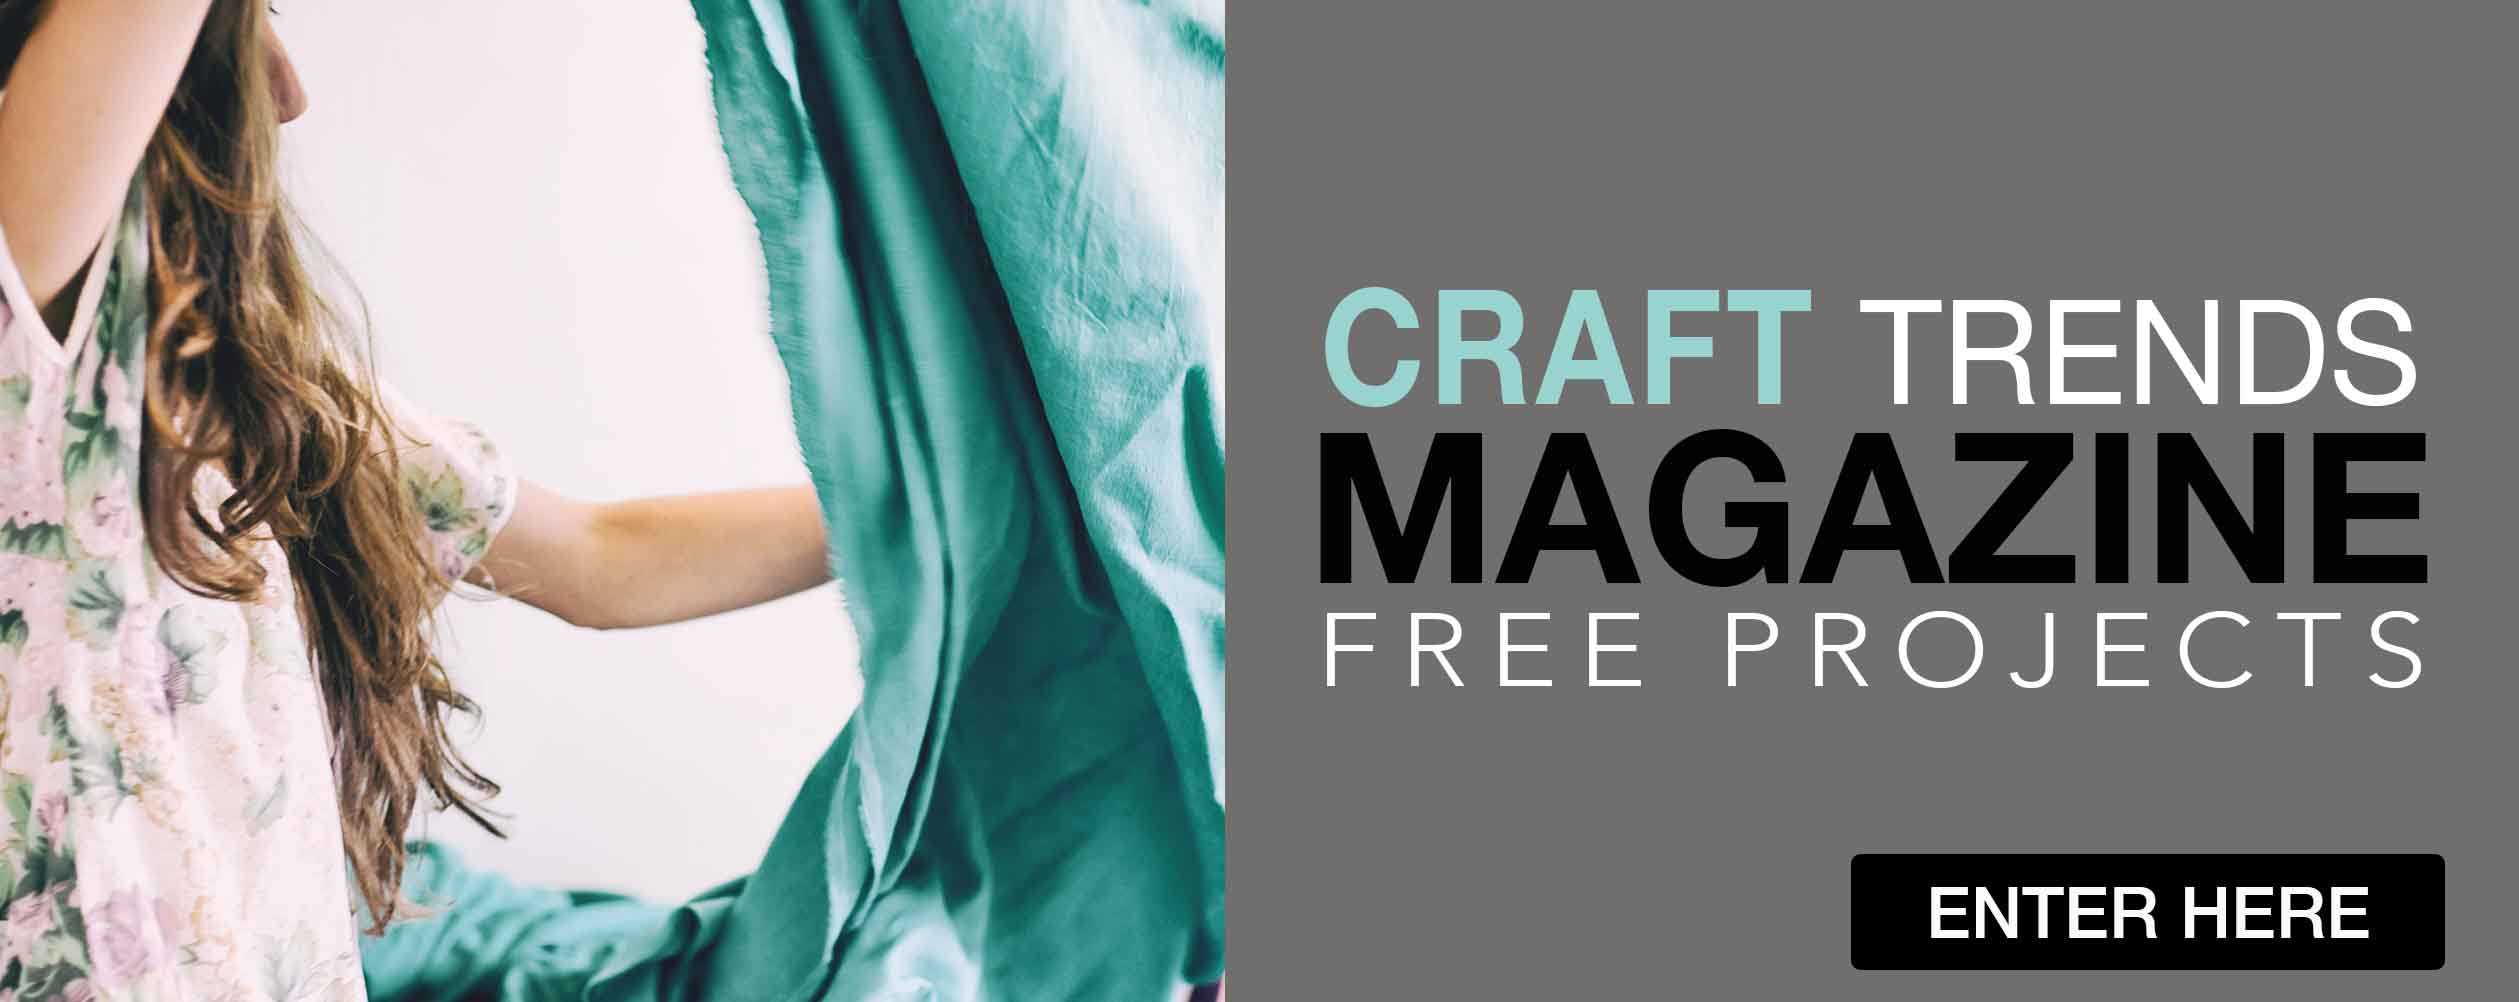 CRAFT Trends FREE projects